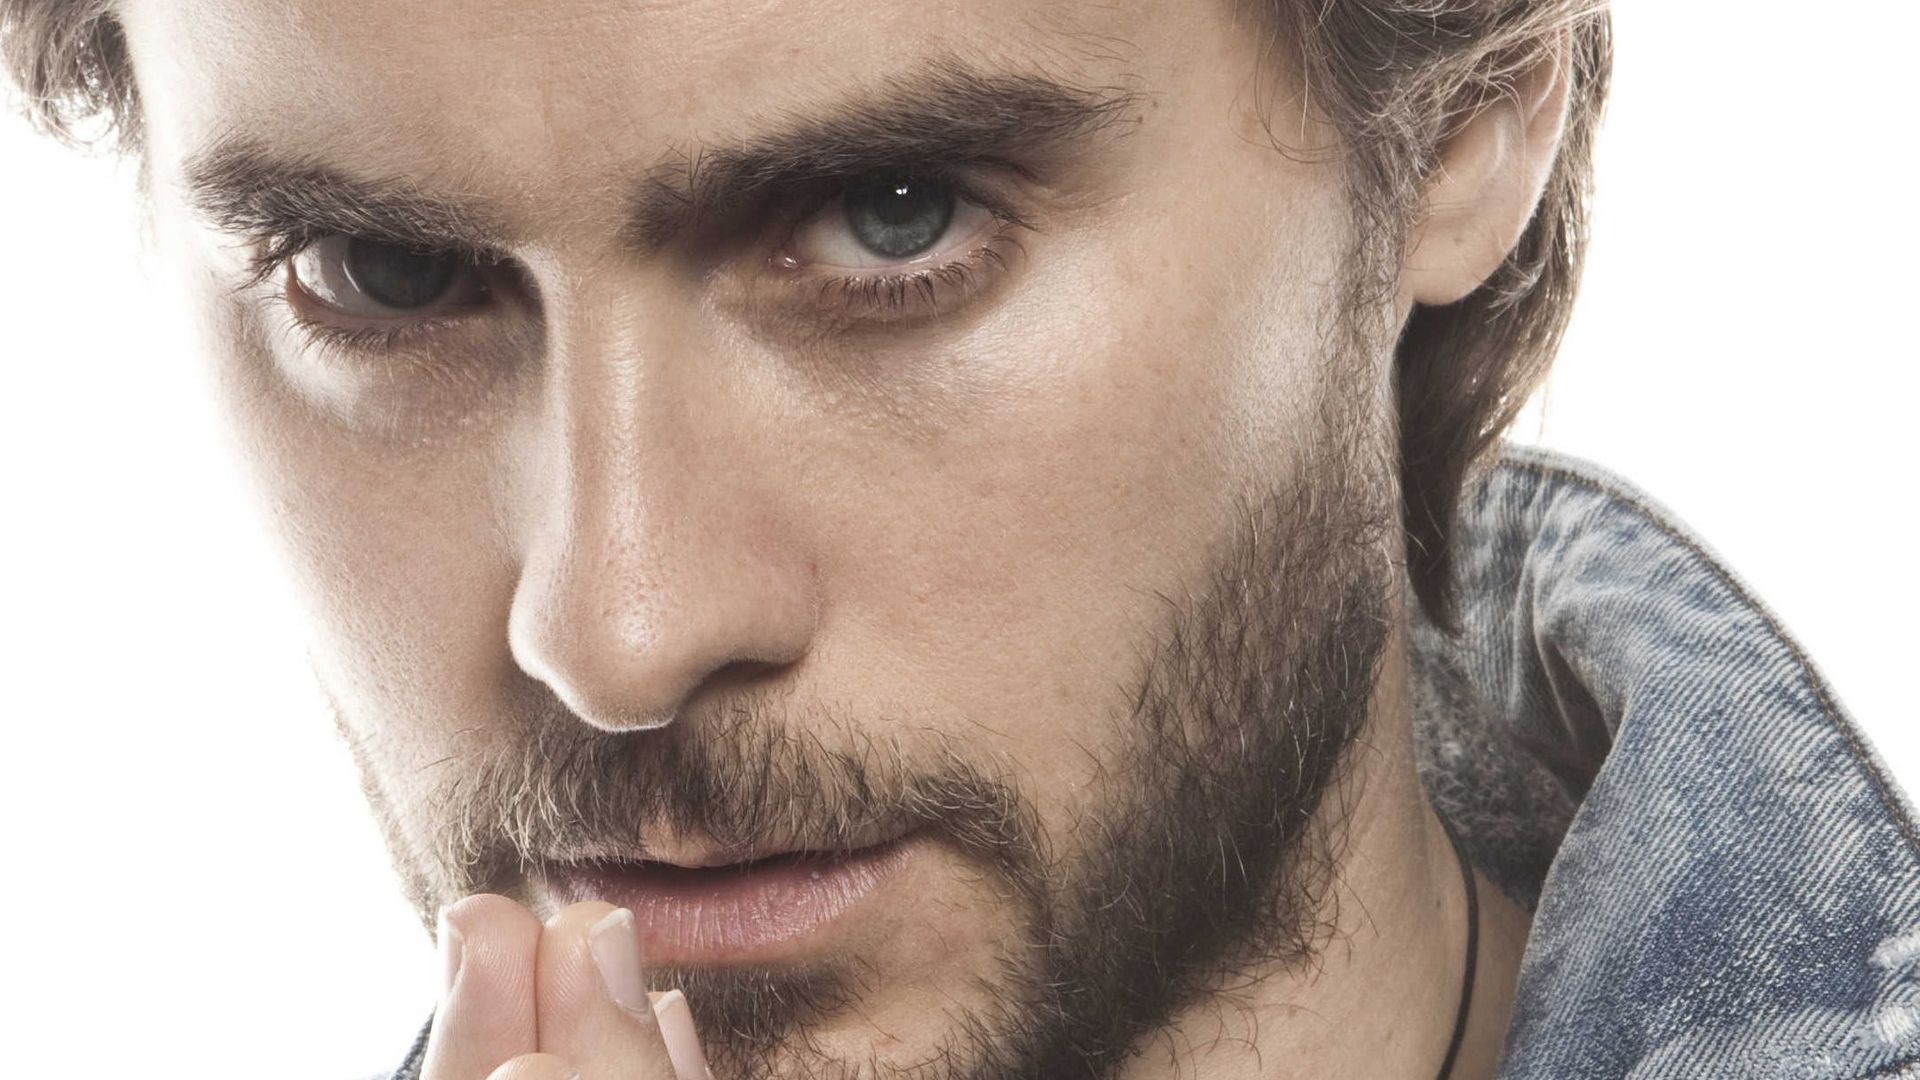 Jared Leto Wallpapers Images Photos Pictures Backgrounds Jared Leto